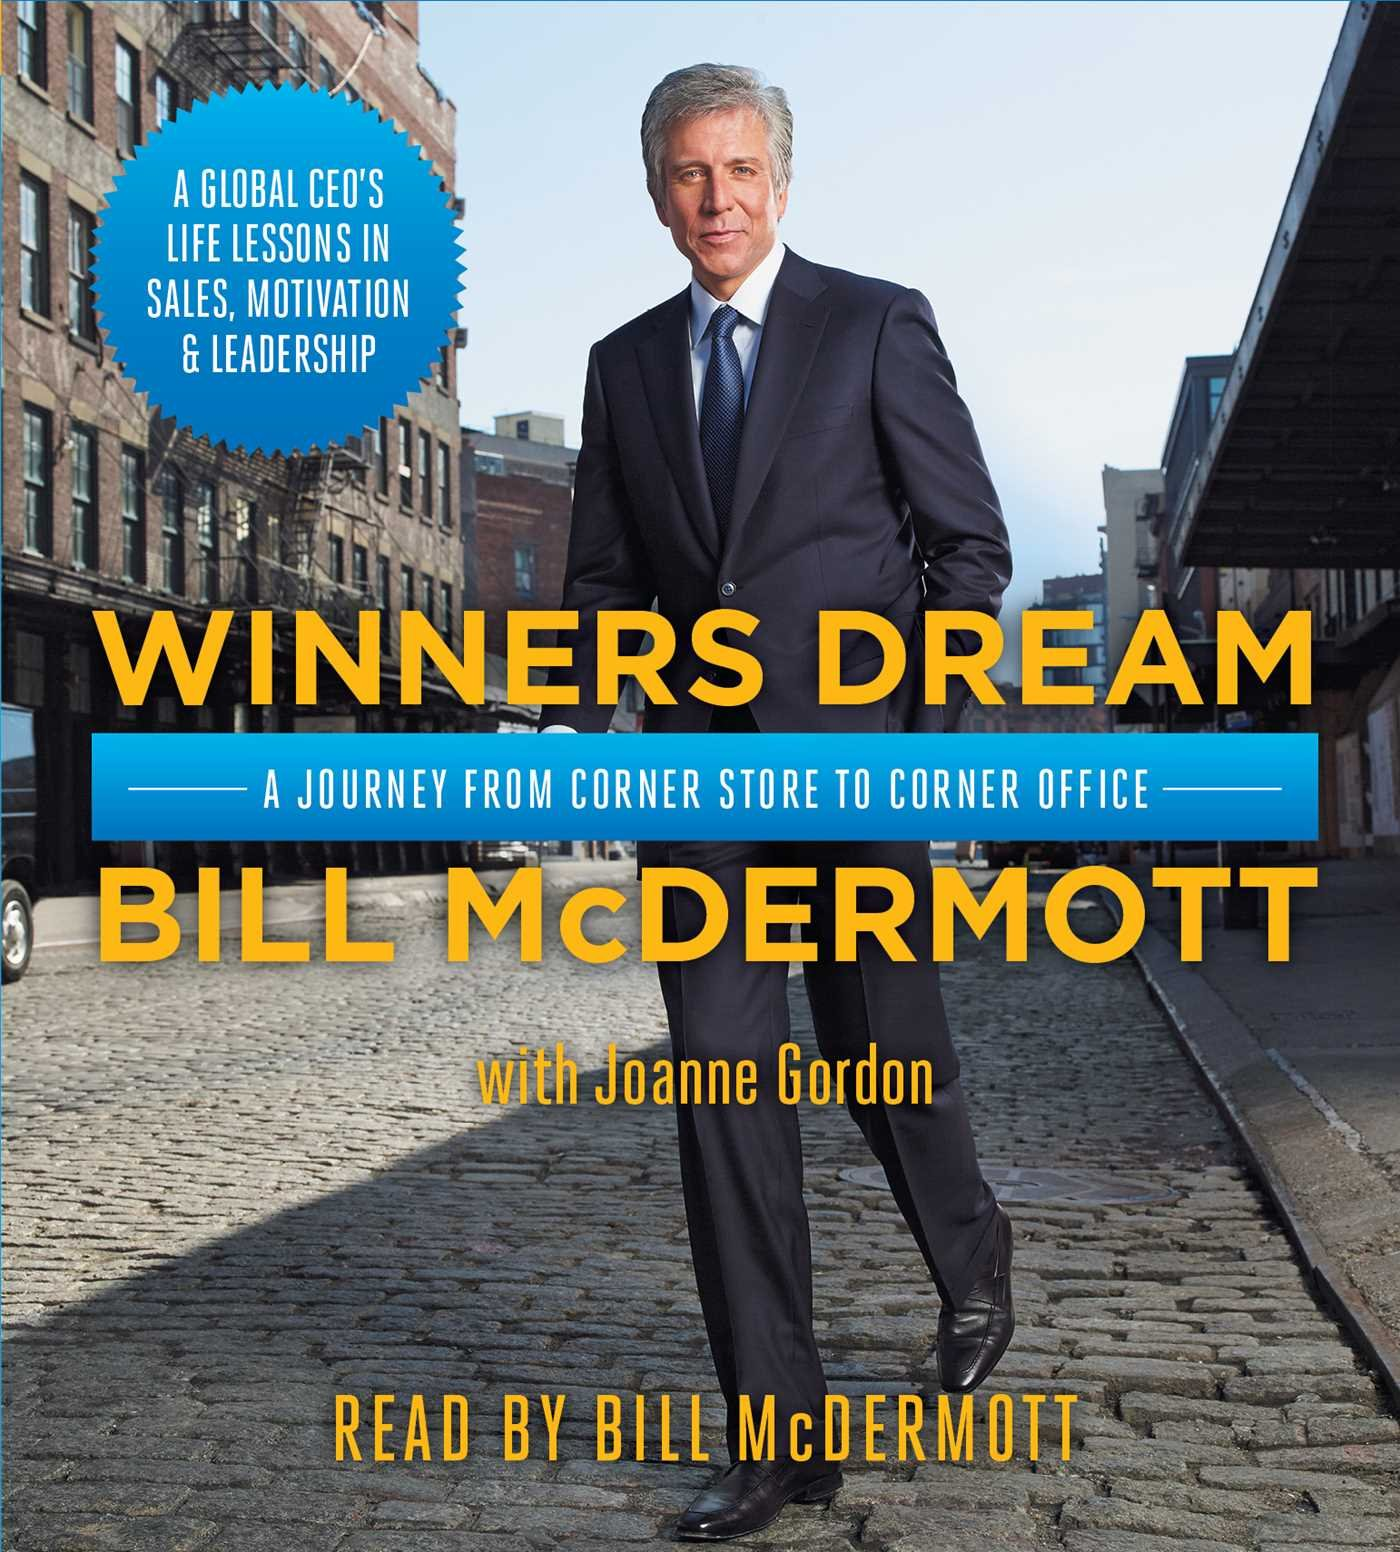 Winners Dream: A Journey from Corner Store to Corner Office.